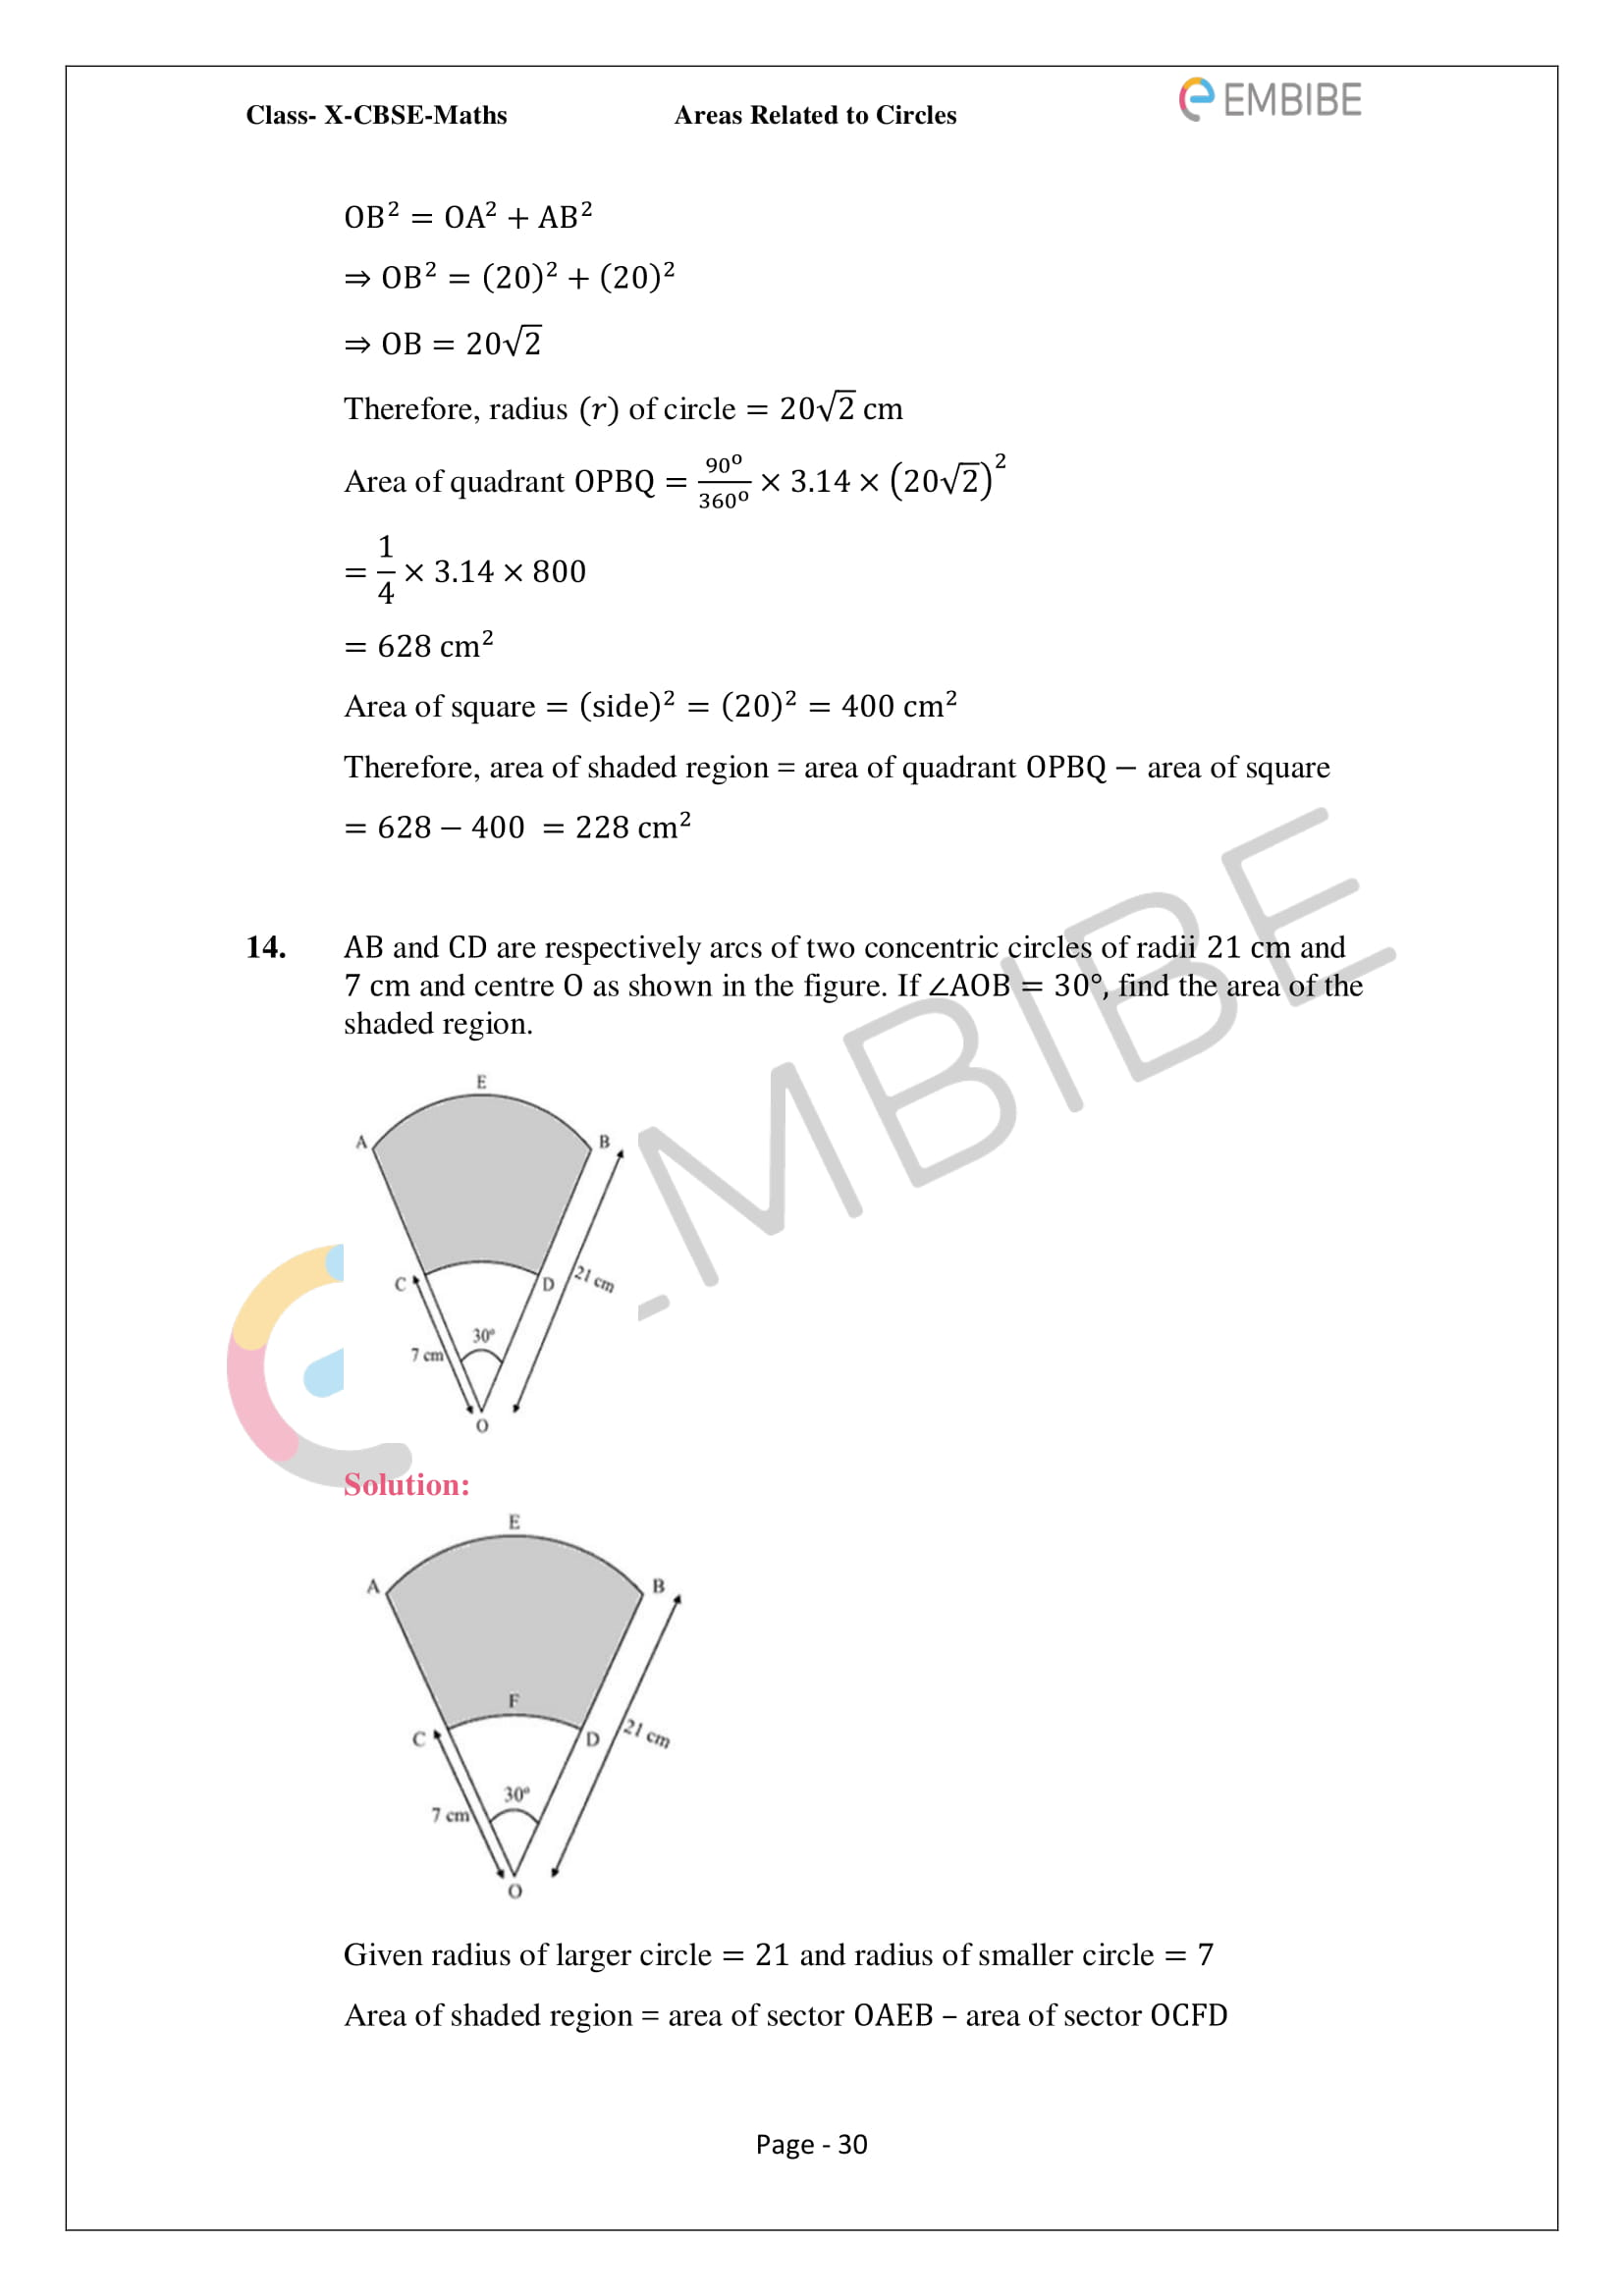 CBSE NCERT Solutions For Class 10 Maths Chapter 12 - Areas Related To Circle - 30